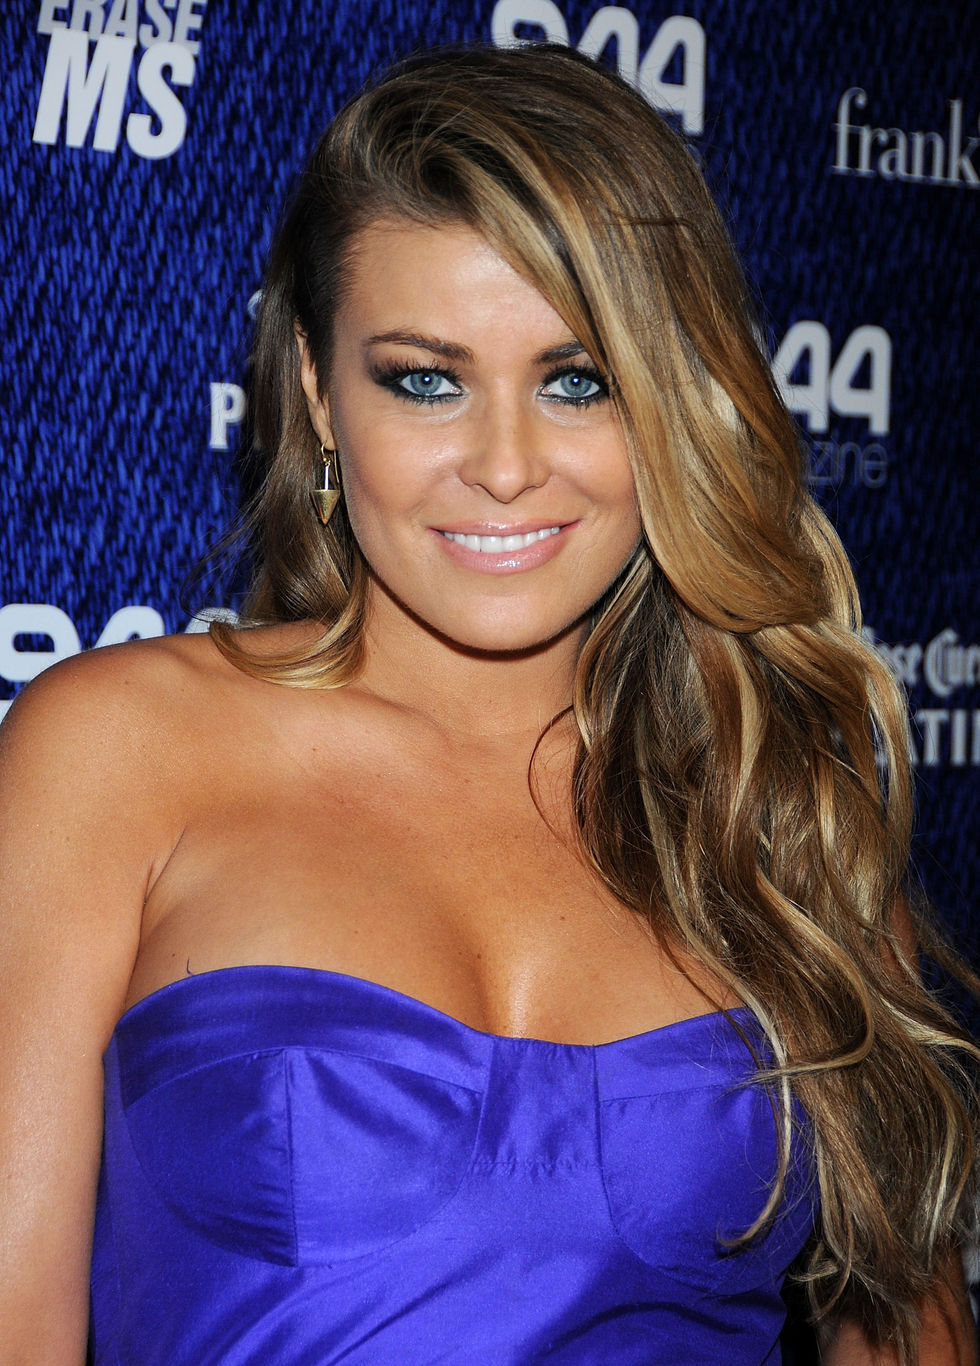 carmen-electra-at-the-frankie-b-10-year-anniversary-party-01